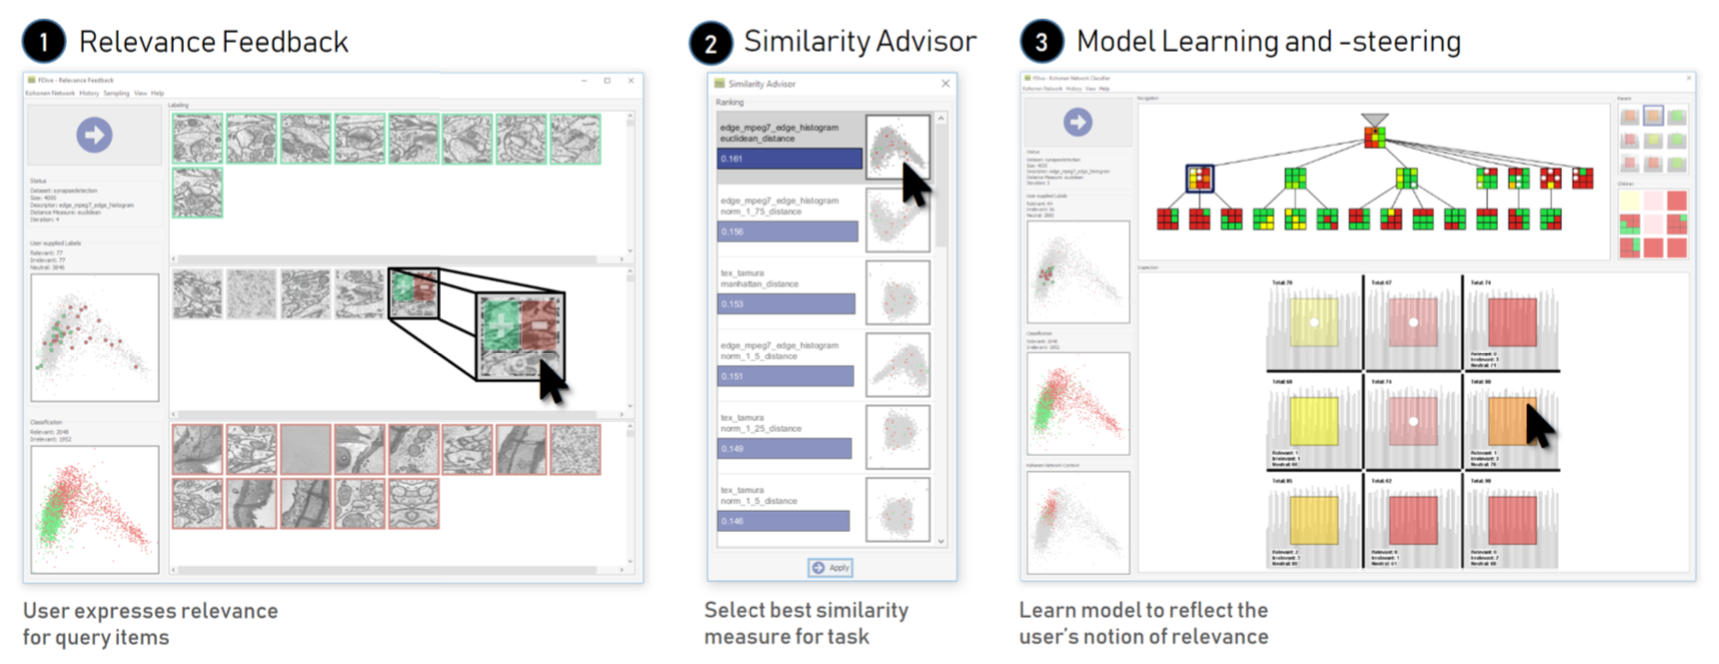 FDive: Learning Relevance Models using Pattern-based Similarity Measures